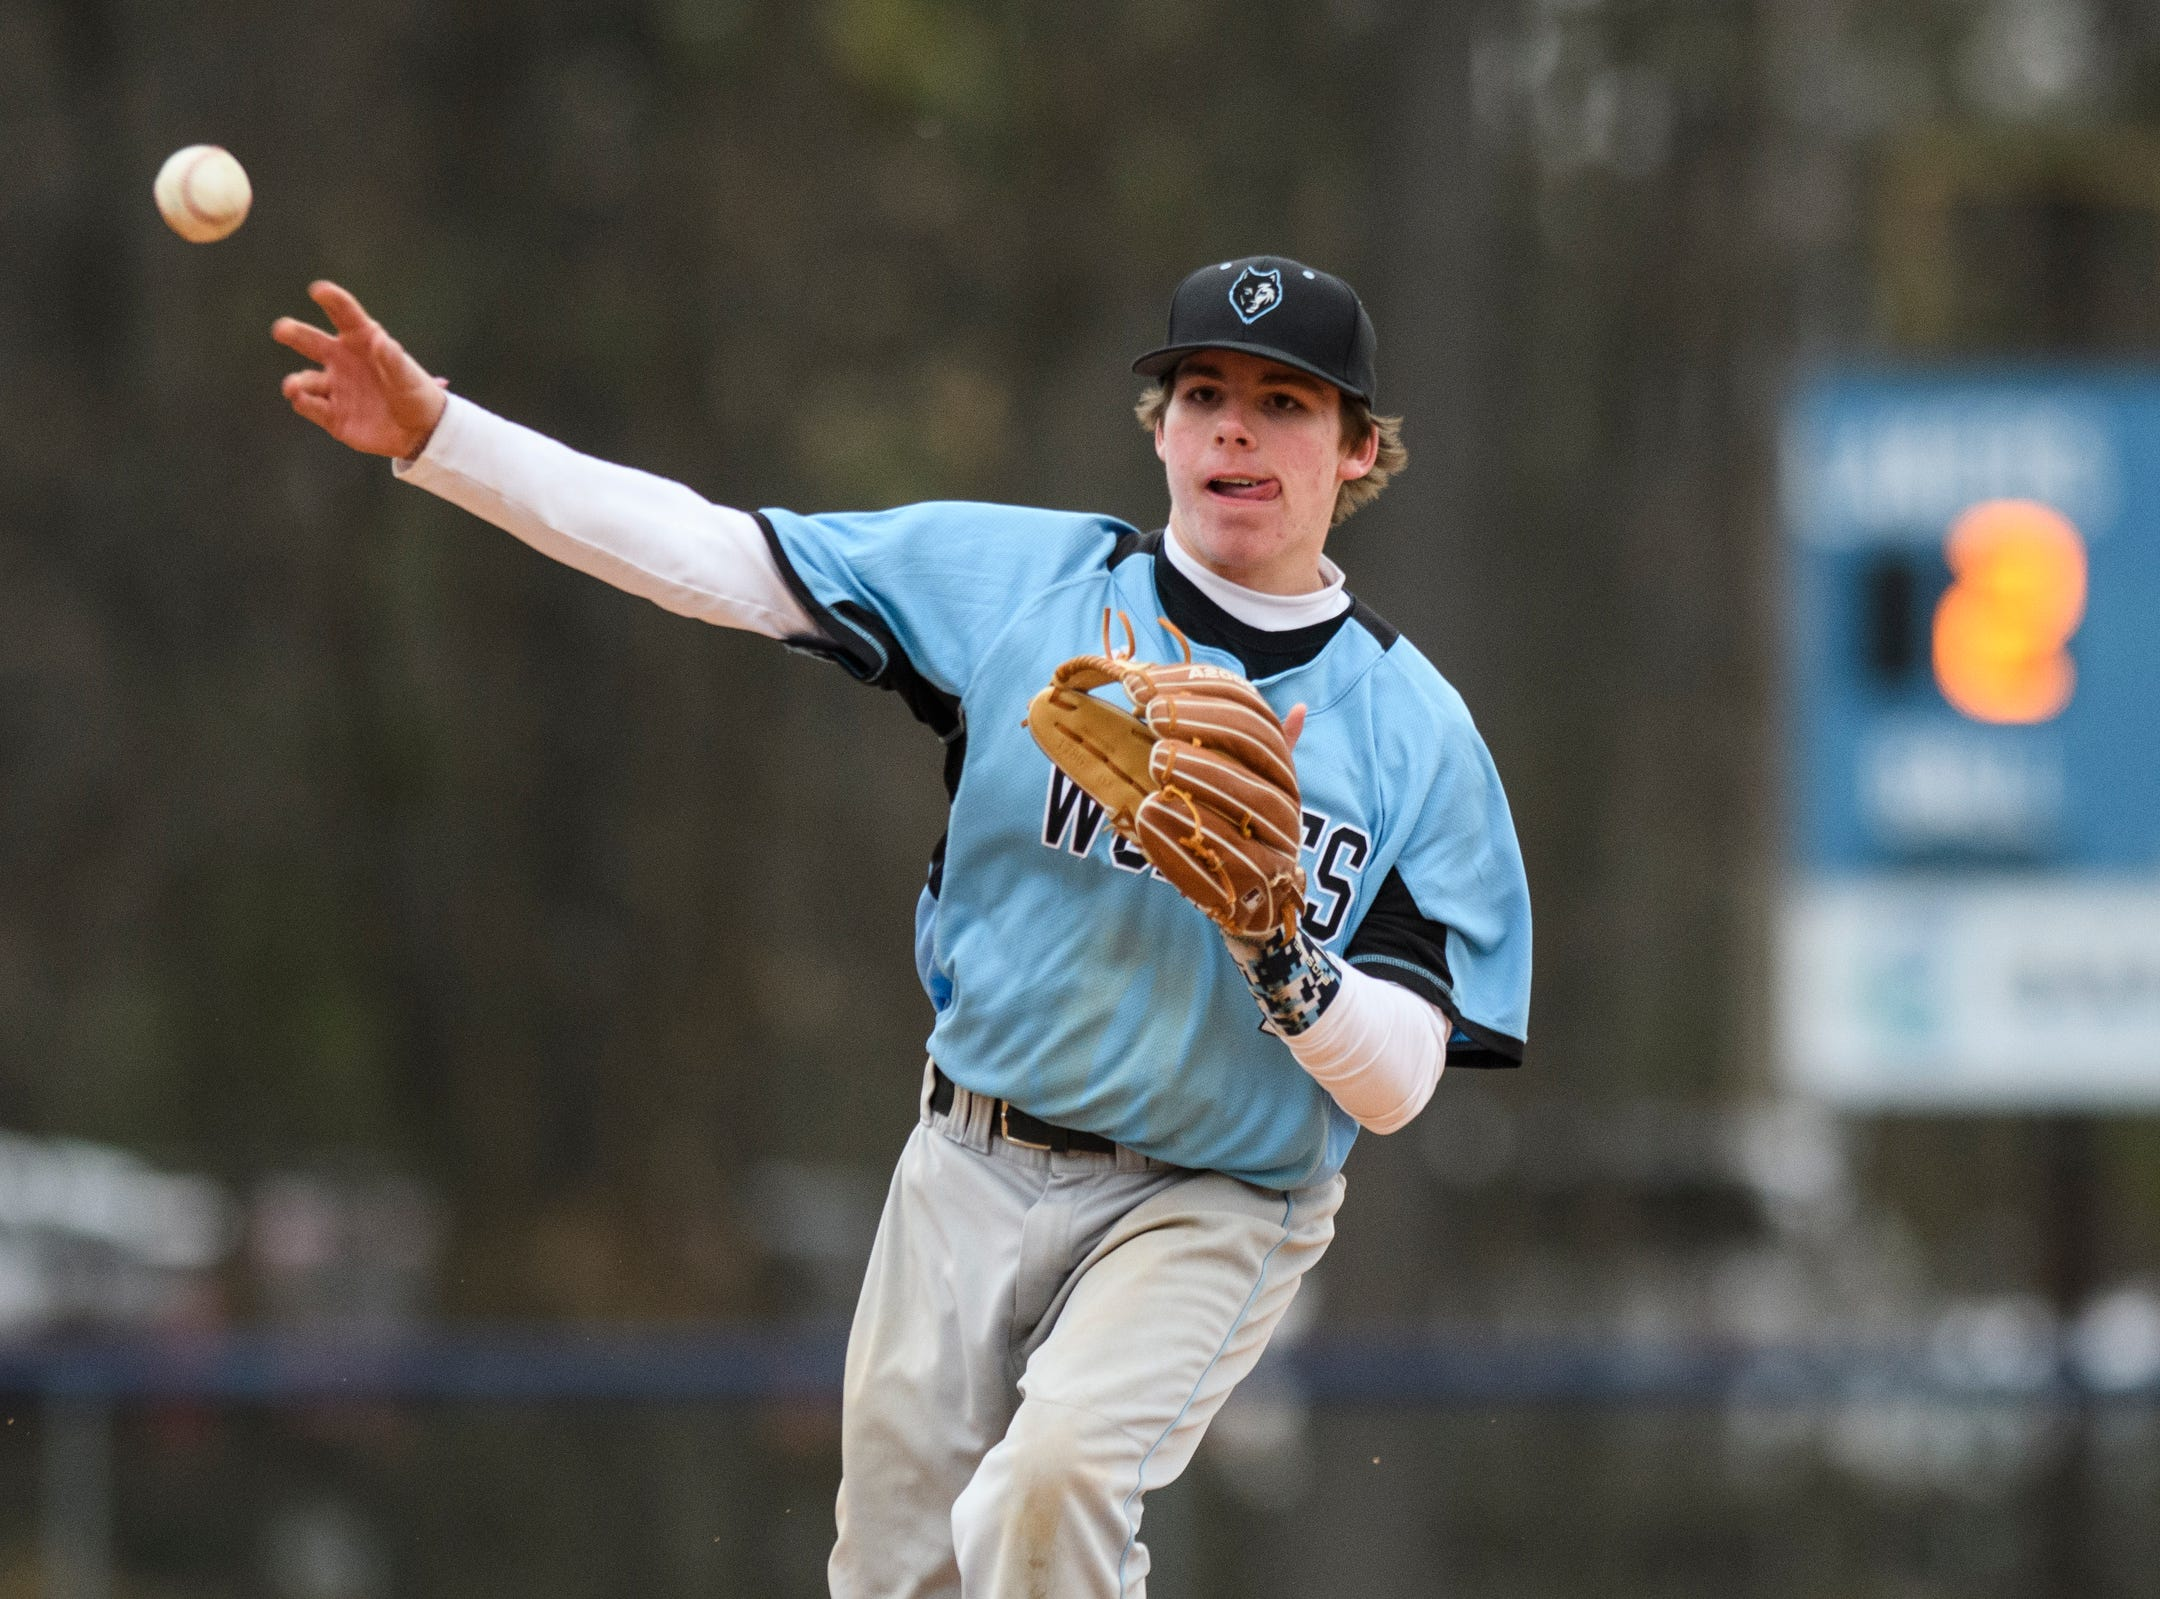 South Burlington's Carson Cherry (7) throws the ball to first for an out during the boys baseball game between the South Burlington Wolves and the Colchester Lakers at Colchester high school on Thursday afternoon April 18, 2019 in Colchester, Vermont.